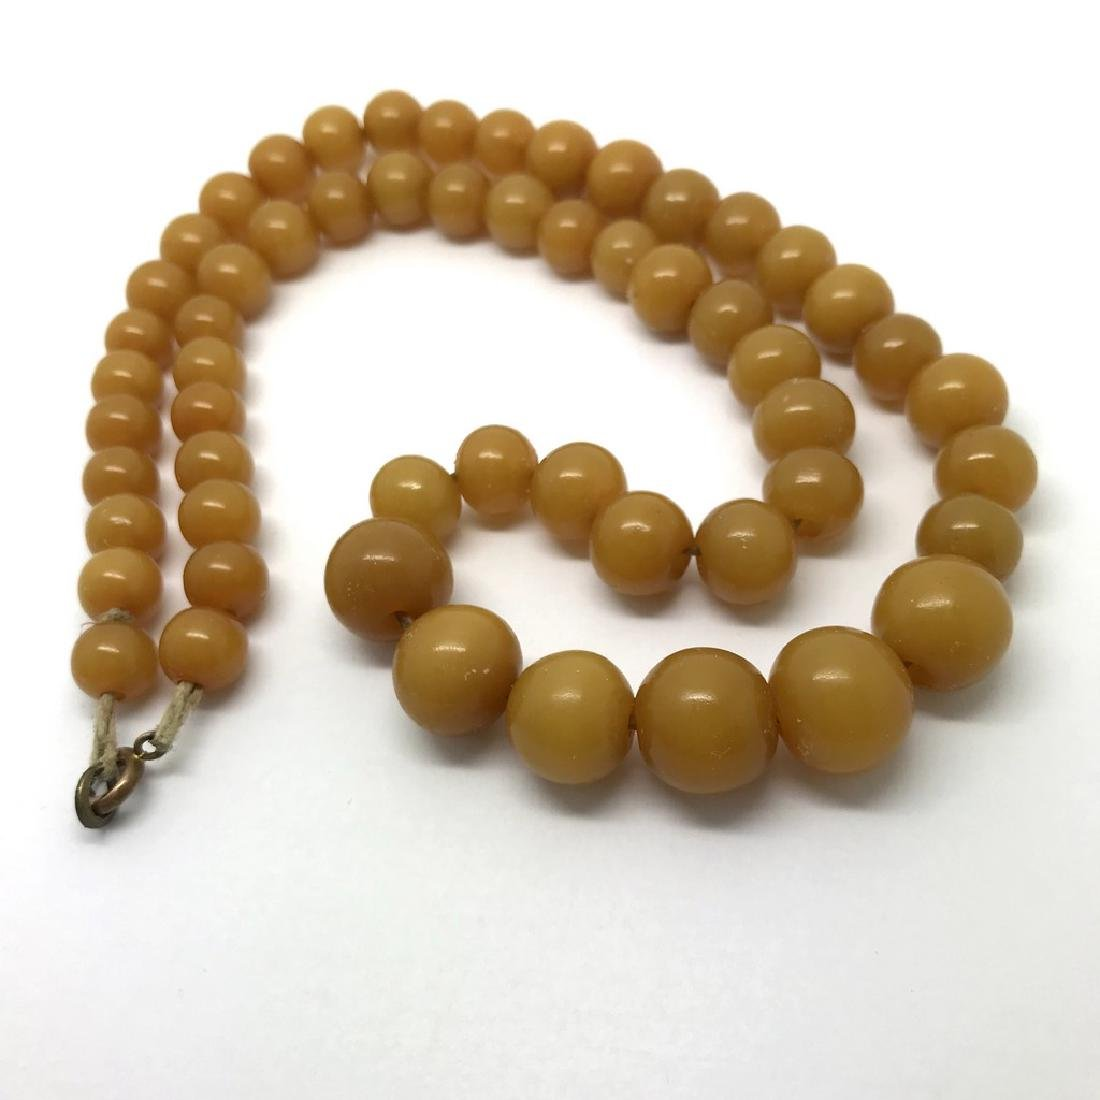 Antique necklace toffee amber design bakelite beads